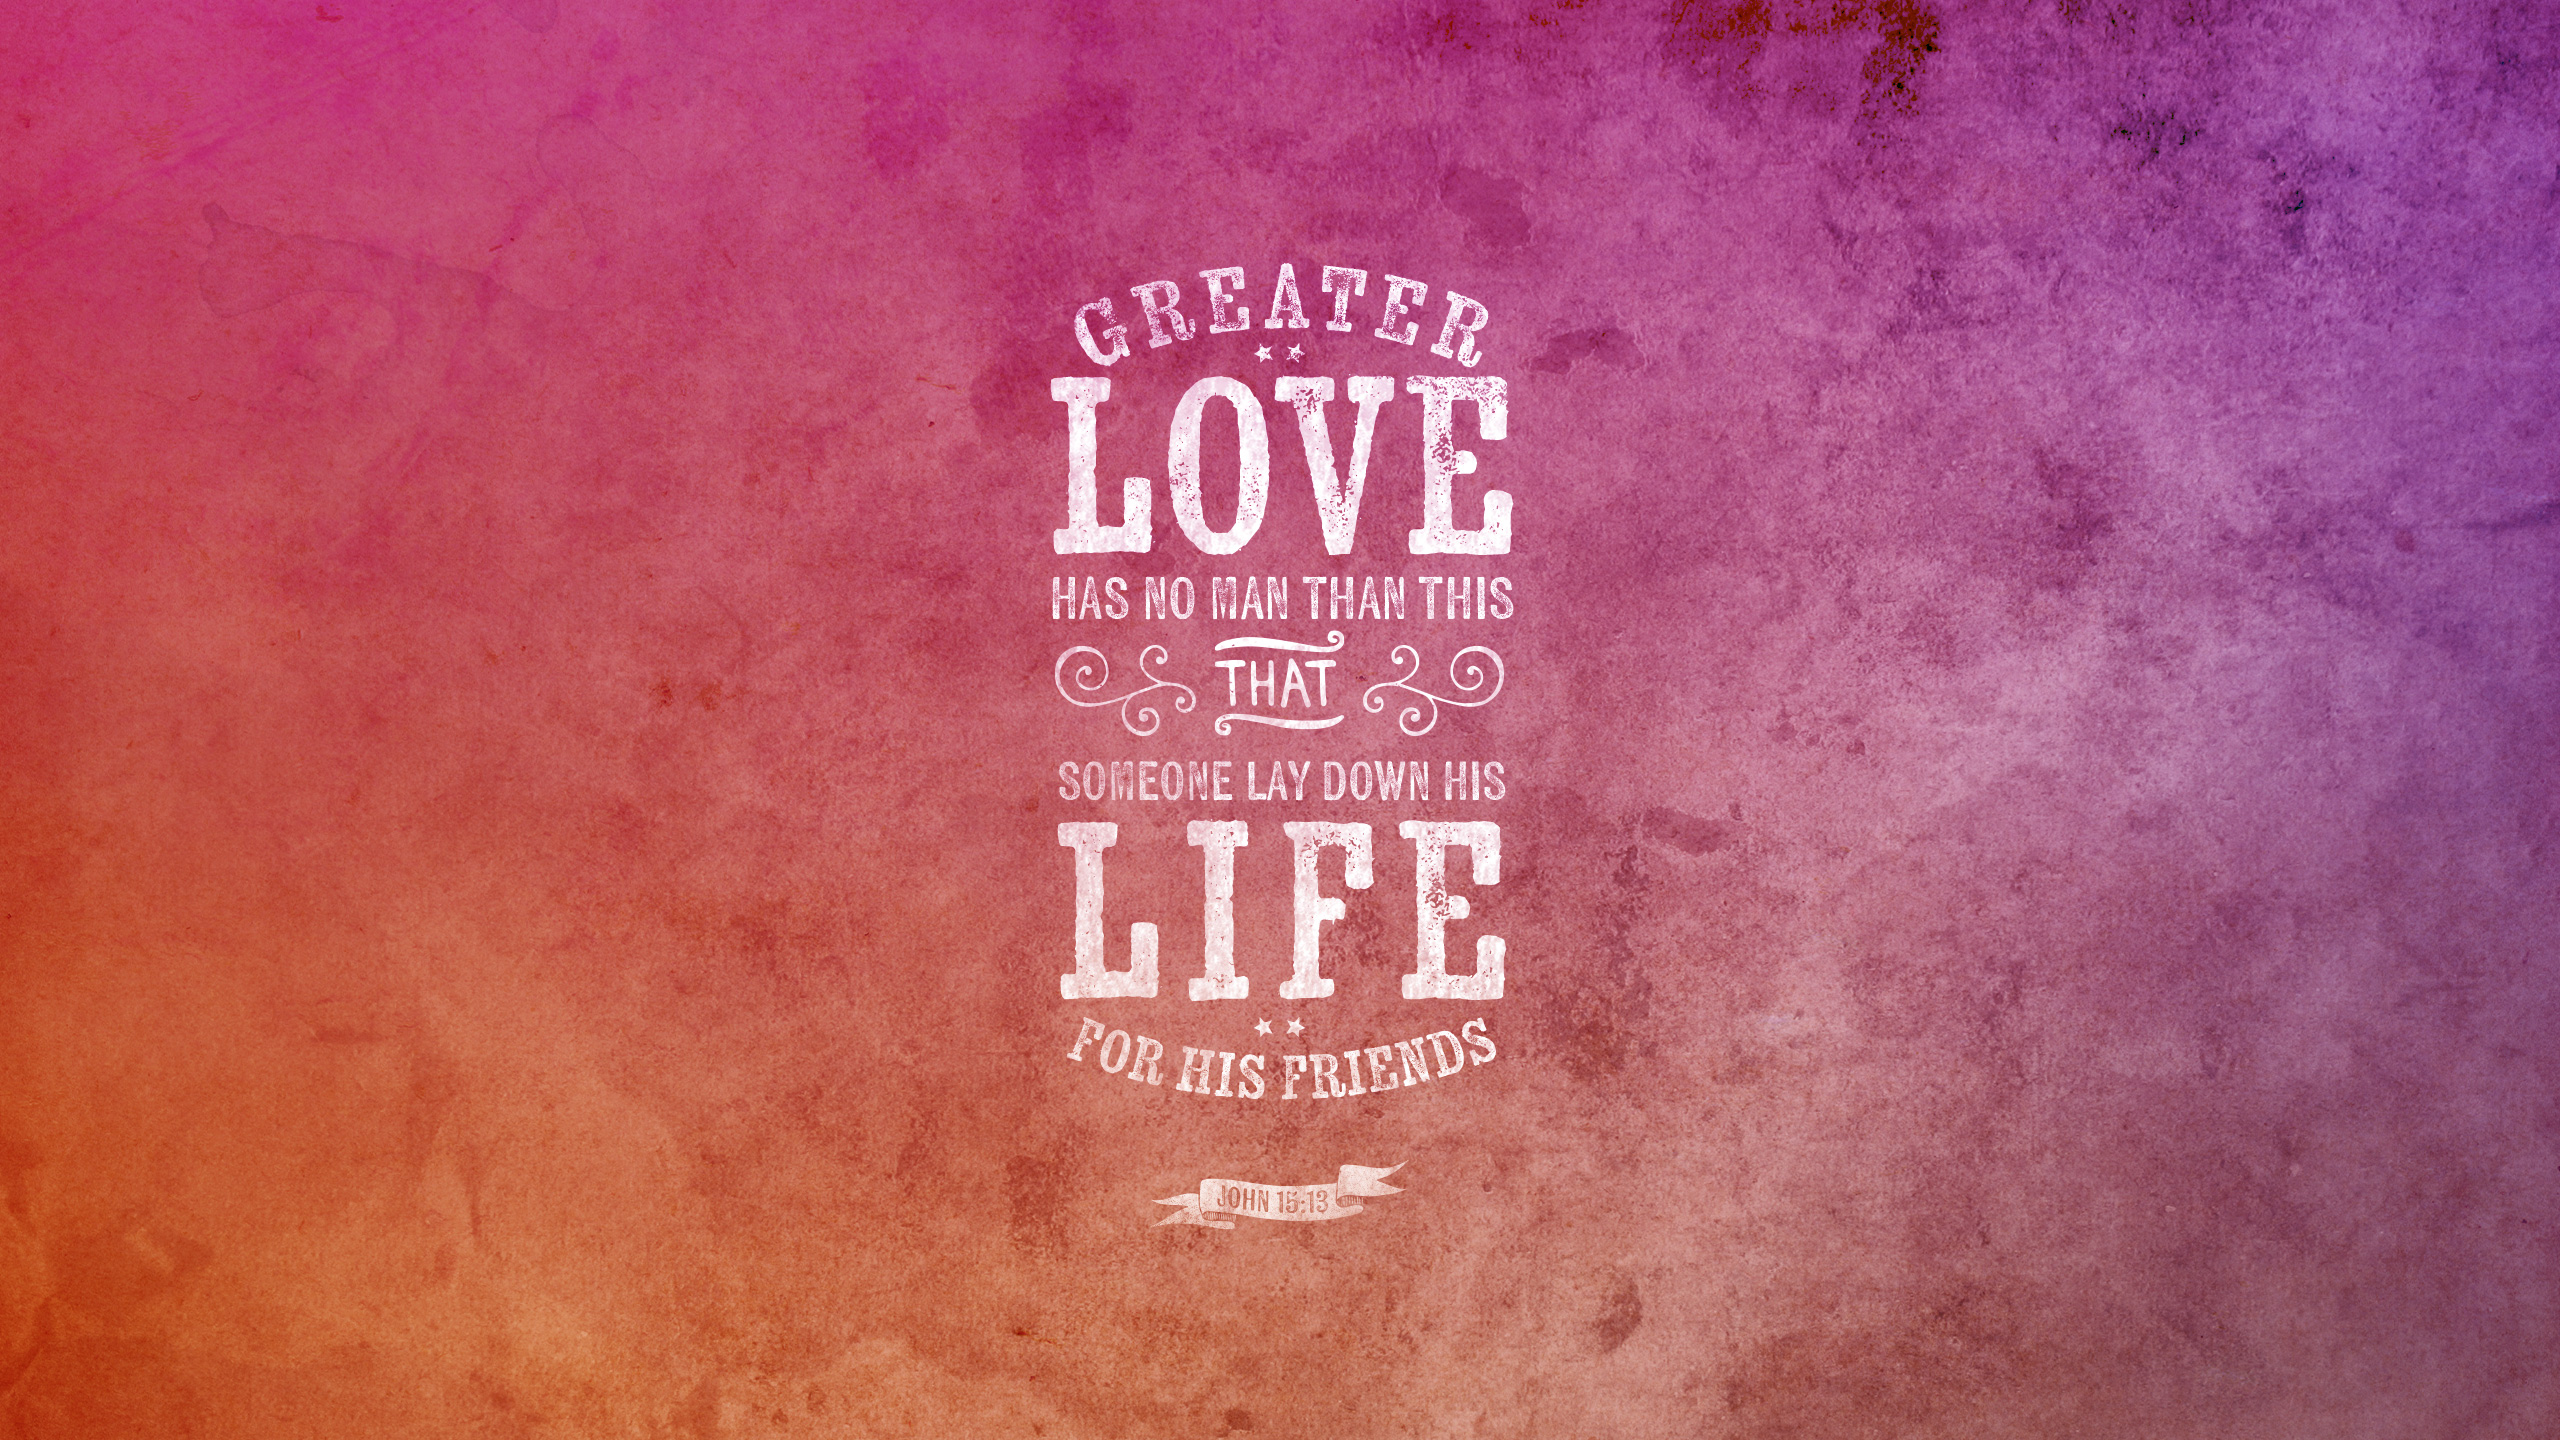 Wednesday Wallpaper No Greater Love   Jacob Abshire 2560x1440